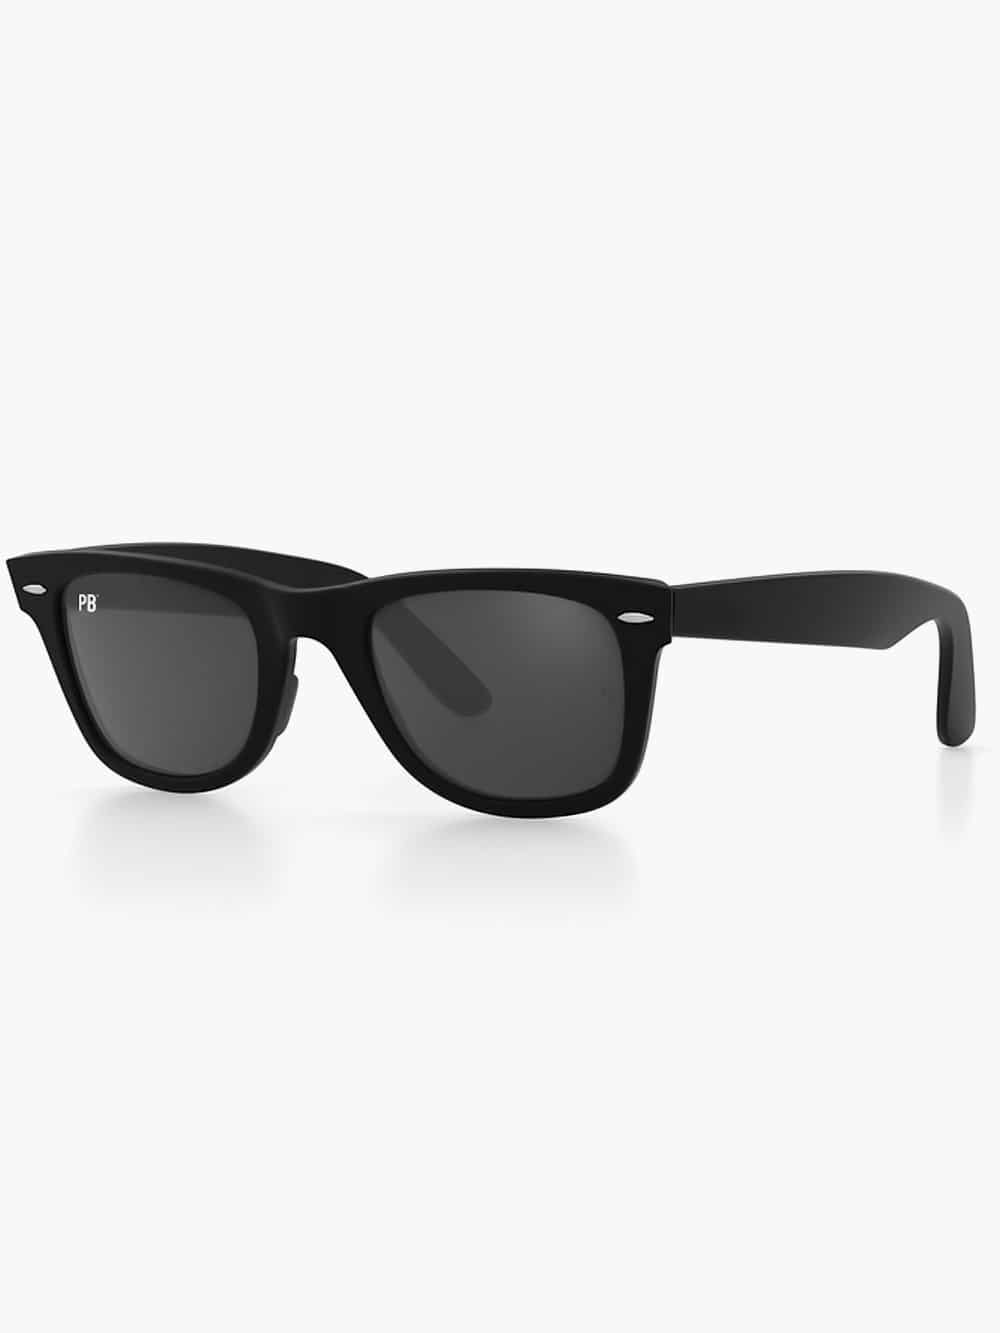 wayfarer-matte-black-side